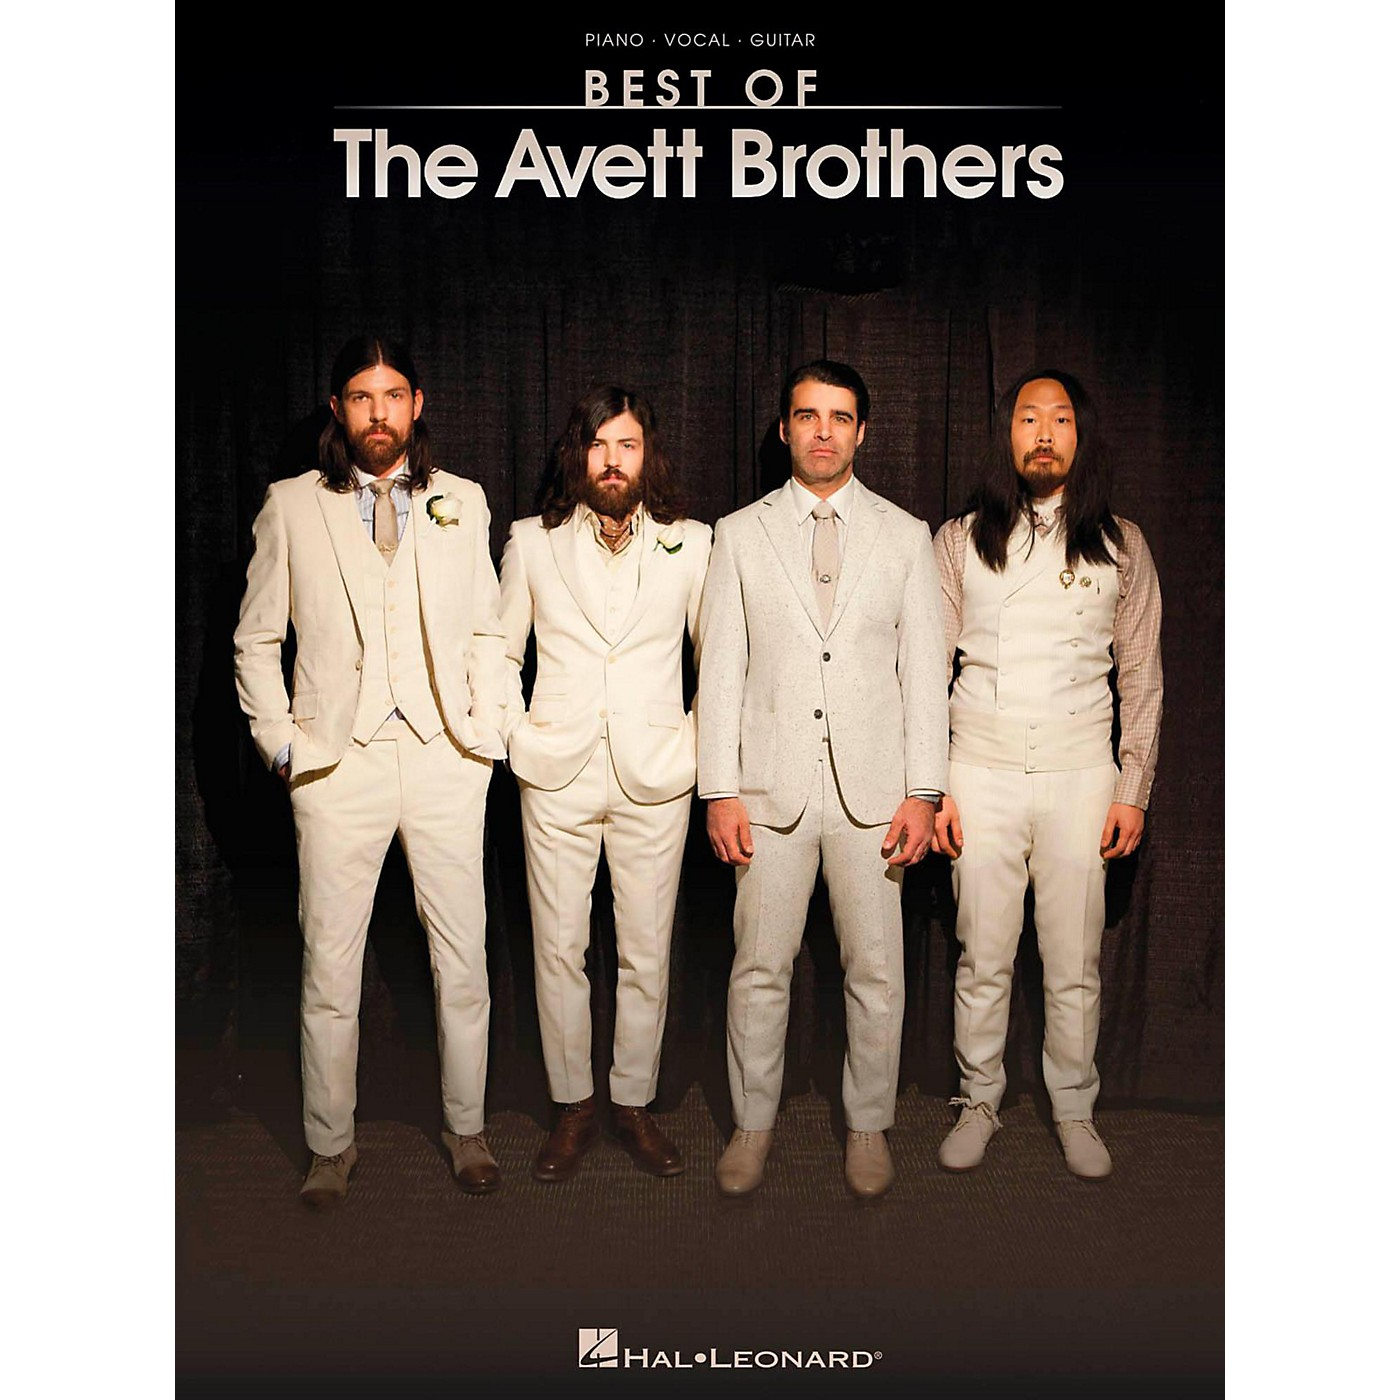 Hal Leonard Best Of The Avett Brothers for Piano/Vocal/Guitar thumbnail